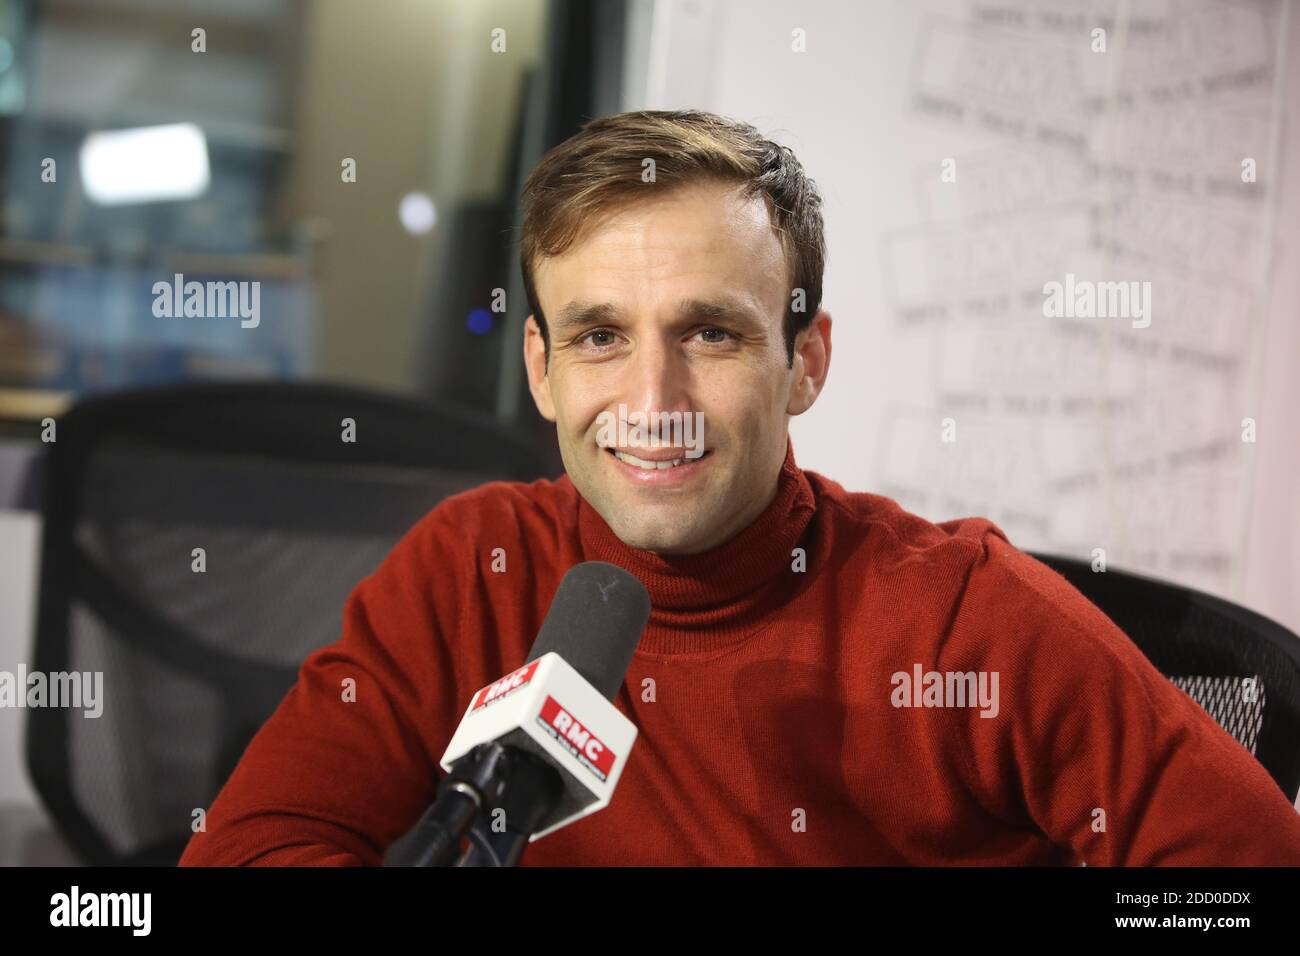 Talk Sport Radio High Resolution Stock Photography And Images Alamy